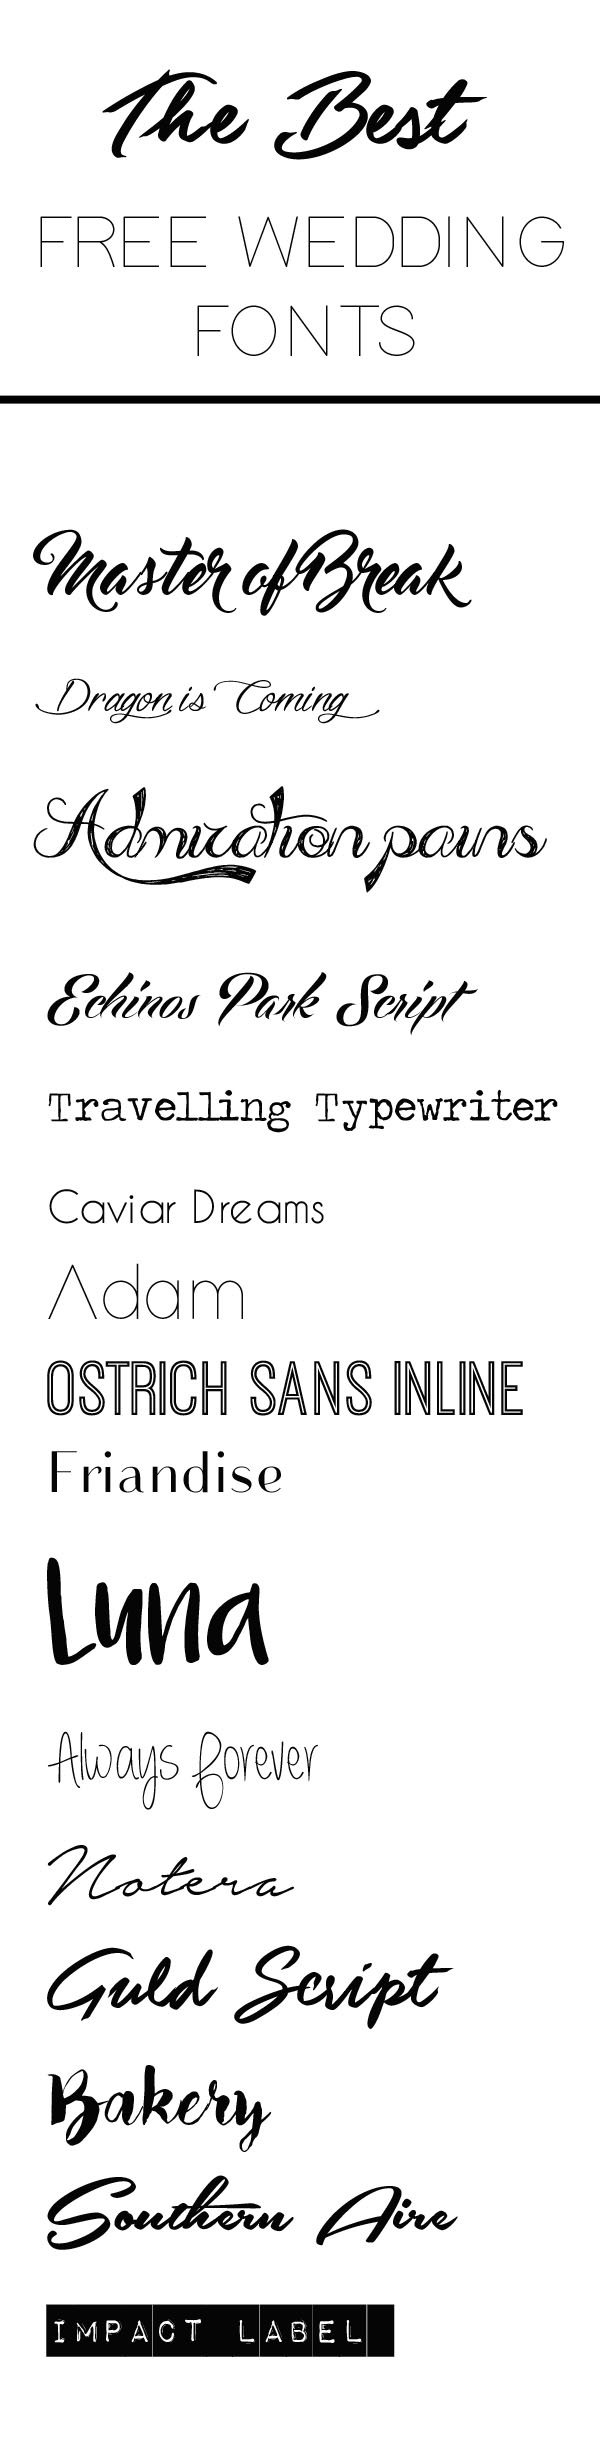 Font For Wedding Invitations The Best Free Fonts For Wedding Invitations Place Cards